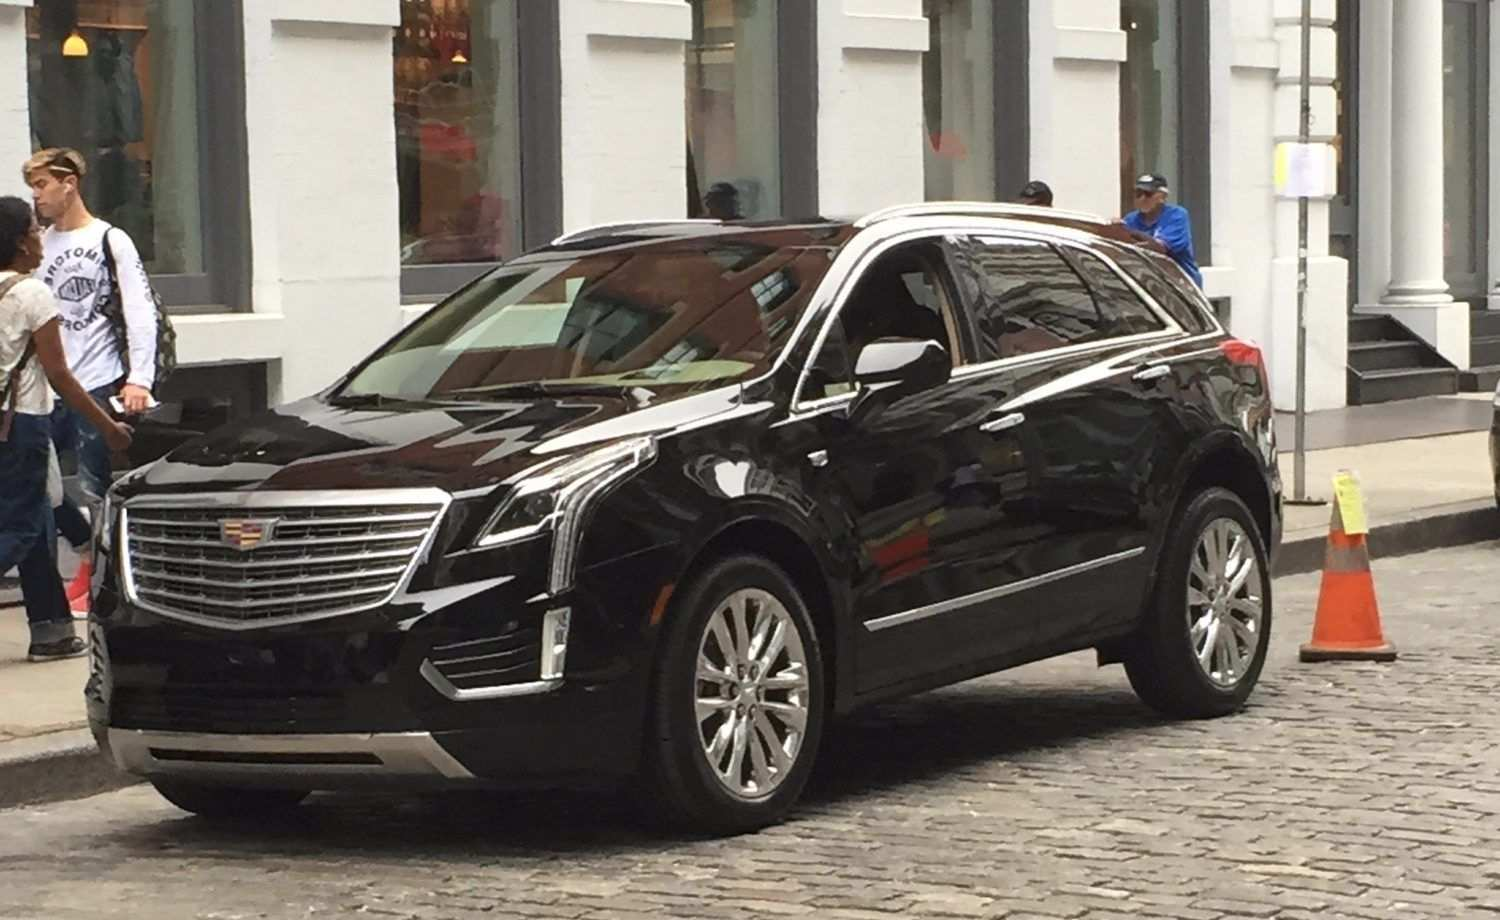 26 New 2019 Cadillac Srx Price Price and Review by 2019 Cadillac Srx Price